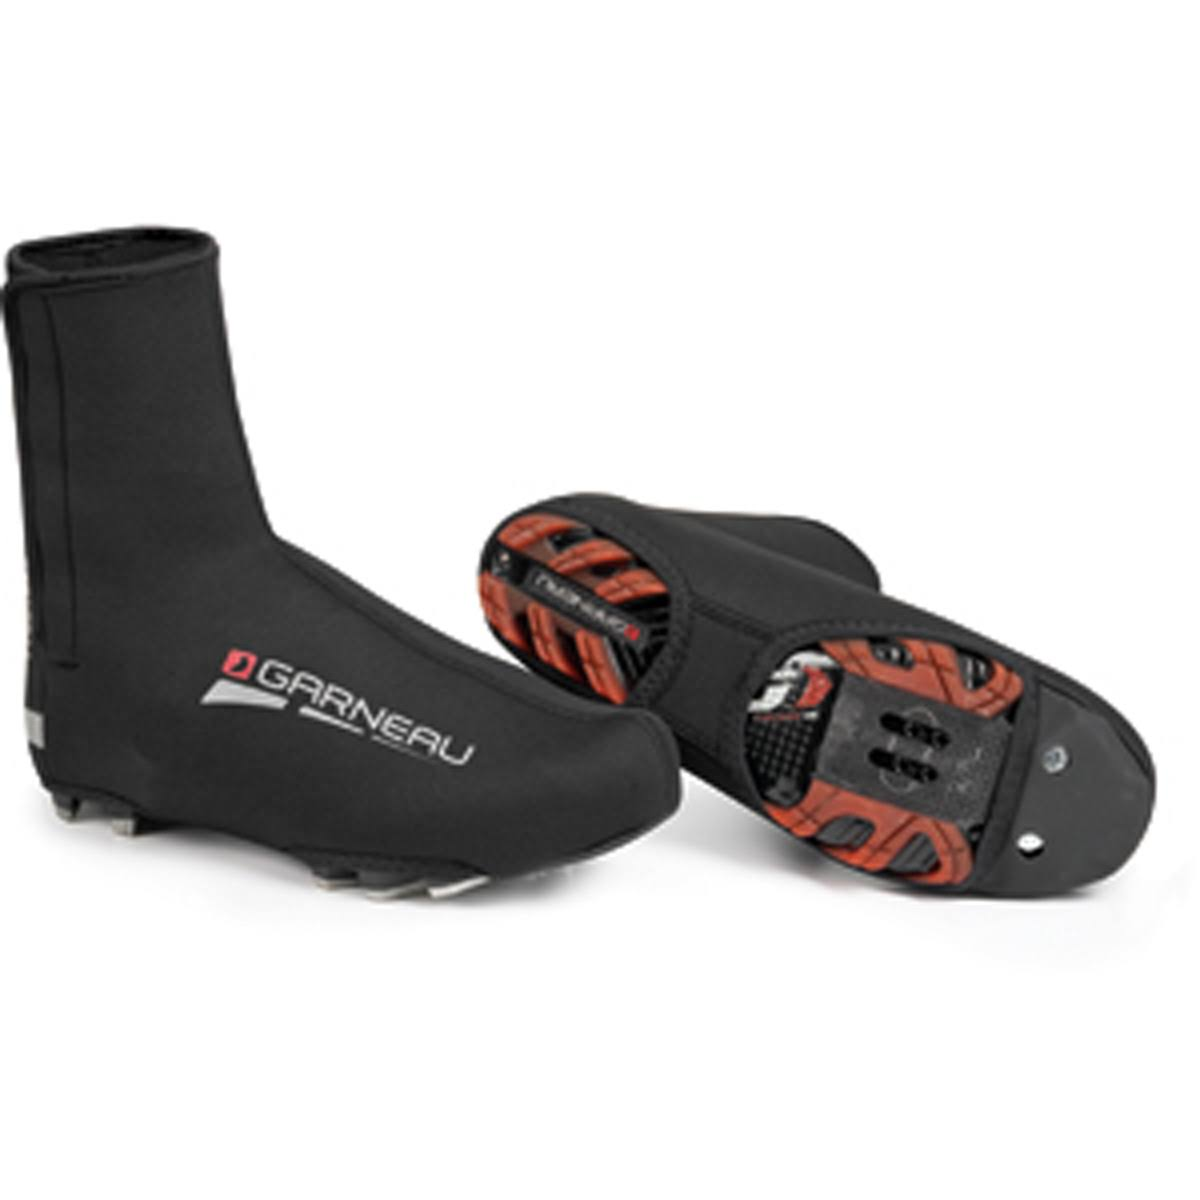 Louis Garneau Men's Neo Protect II Cycling Shoe Covers - Black, Medium